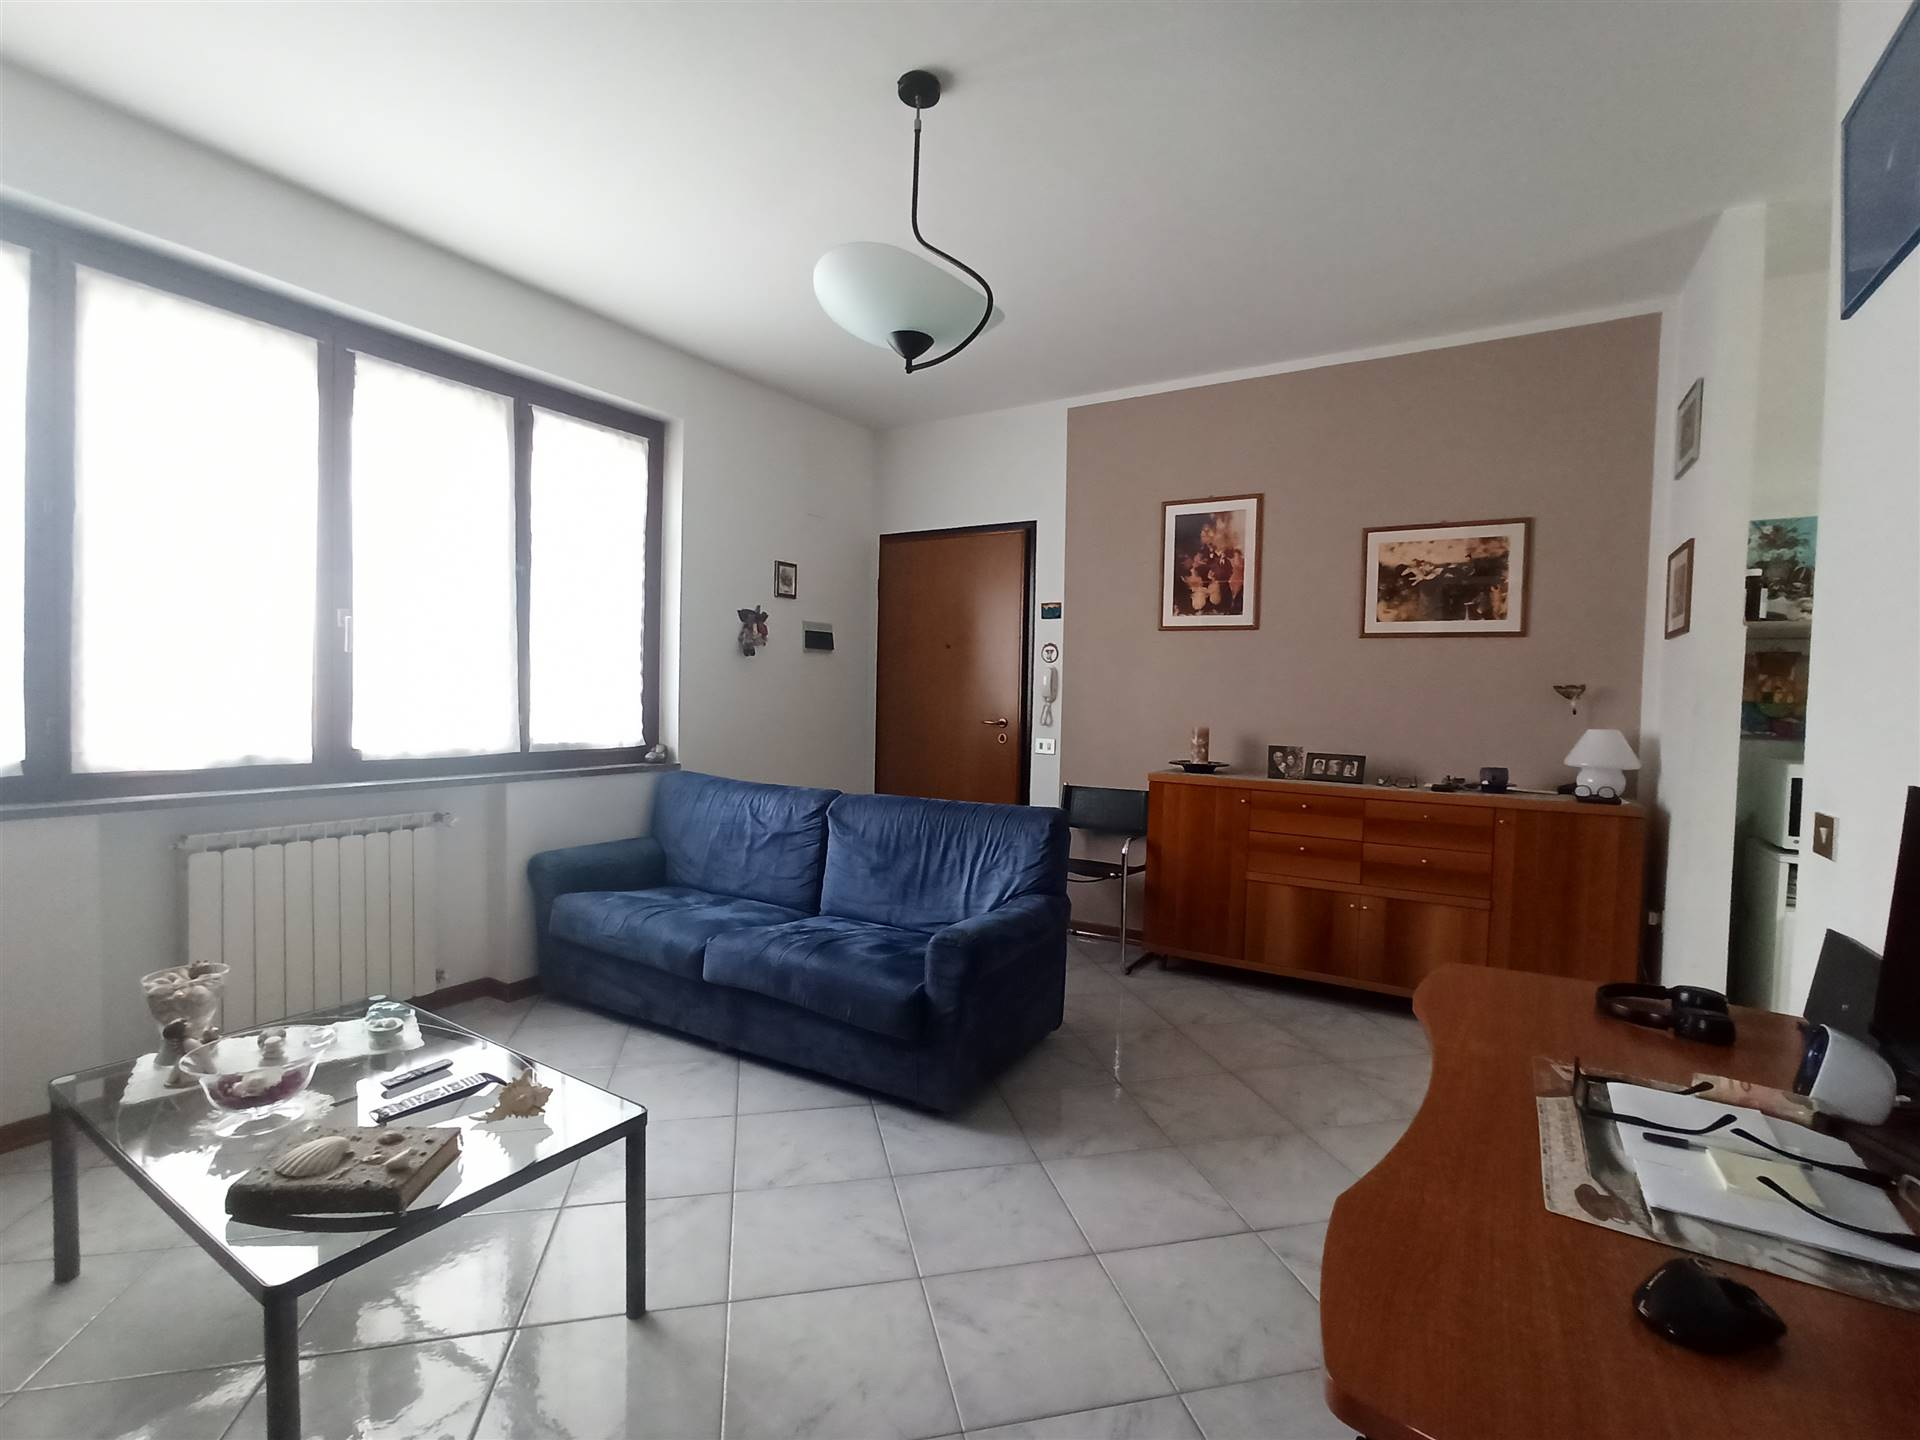 LA MADONNINA, CAMPI BISENZIO, Apartment for sale, Good condition, Heating Individual heating system, Energetic class: G, placed at 2° on 3, composed